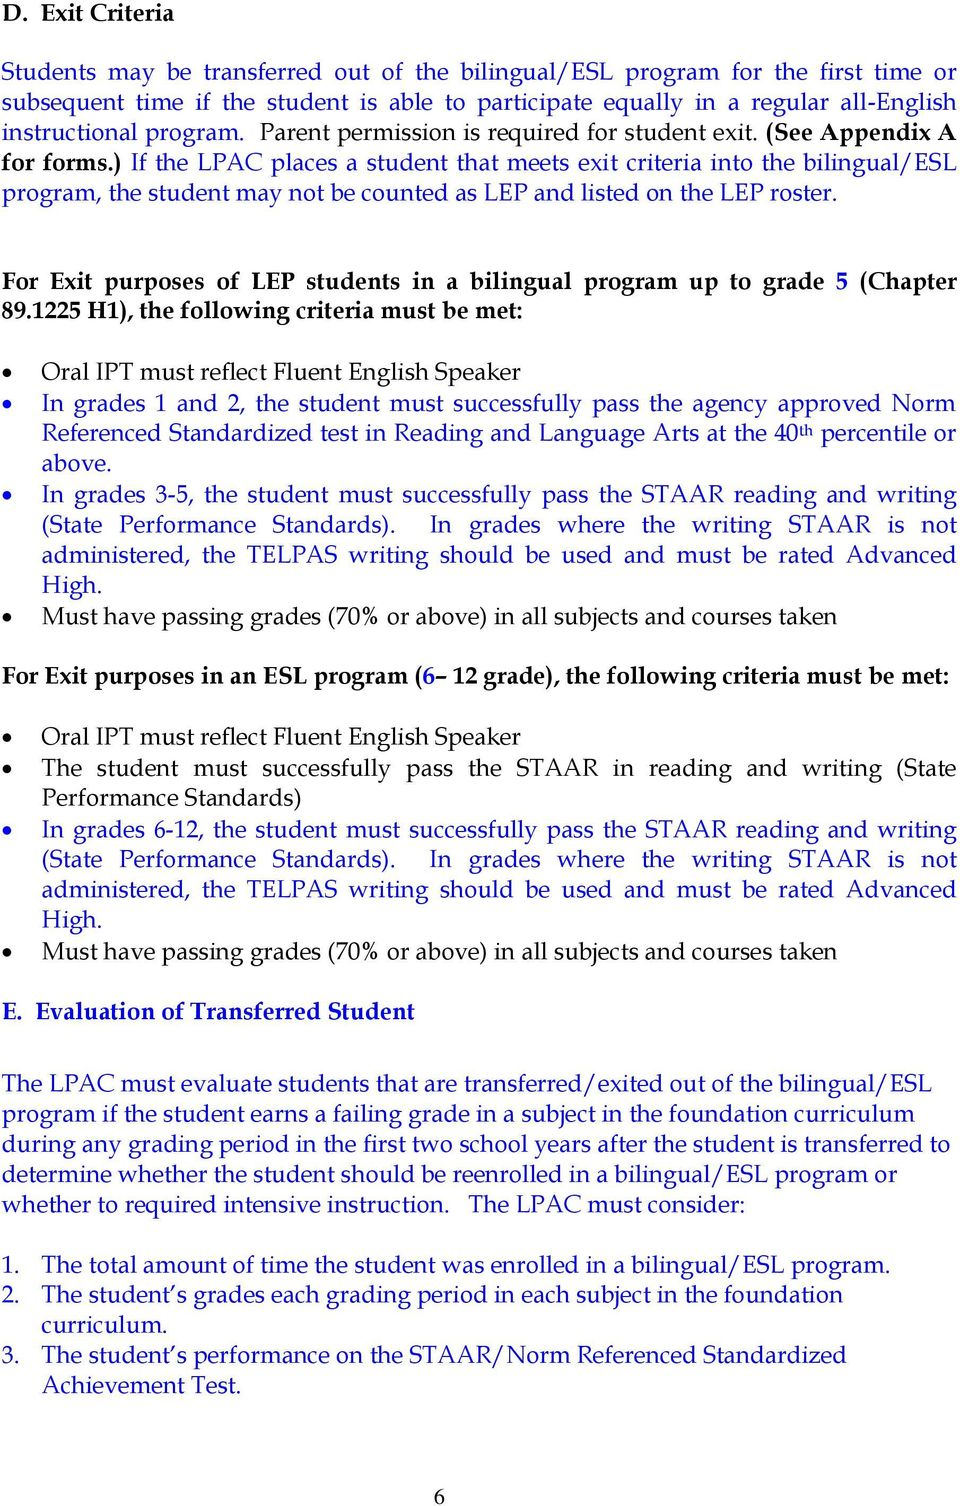 ) If the LPAC places a student that meets exit criteria into the bilingual/esl program, the student may not be counted as LEP and listed on the LEP roster.